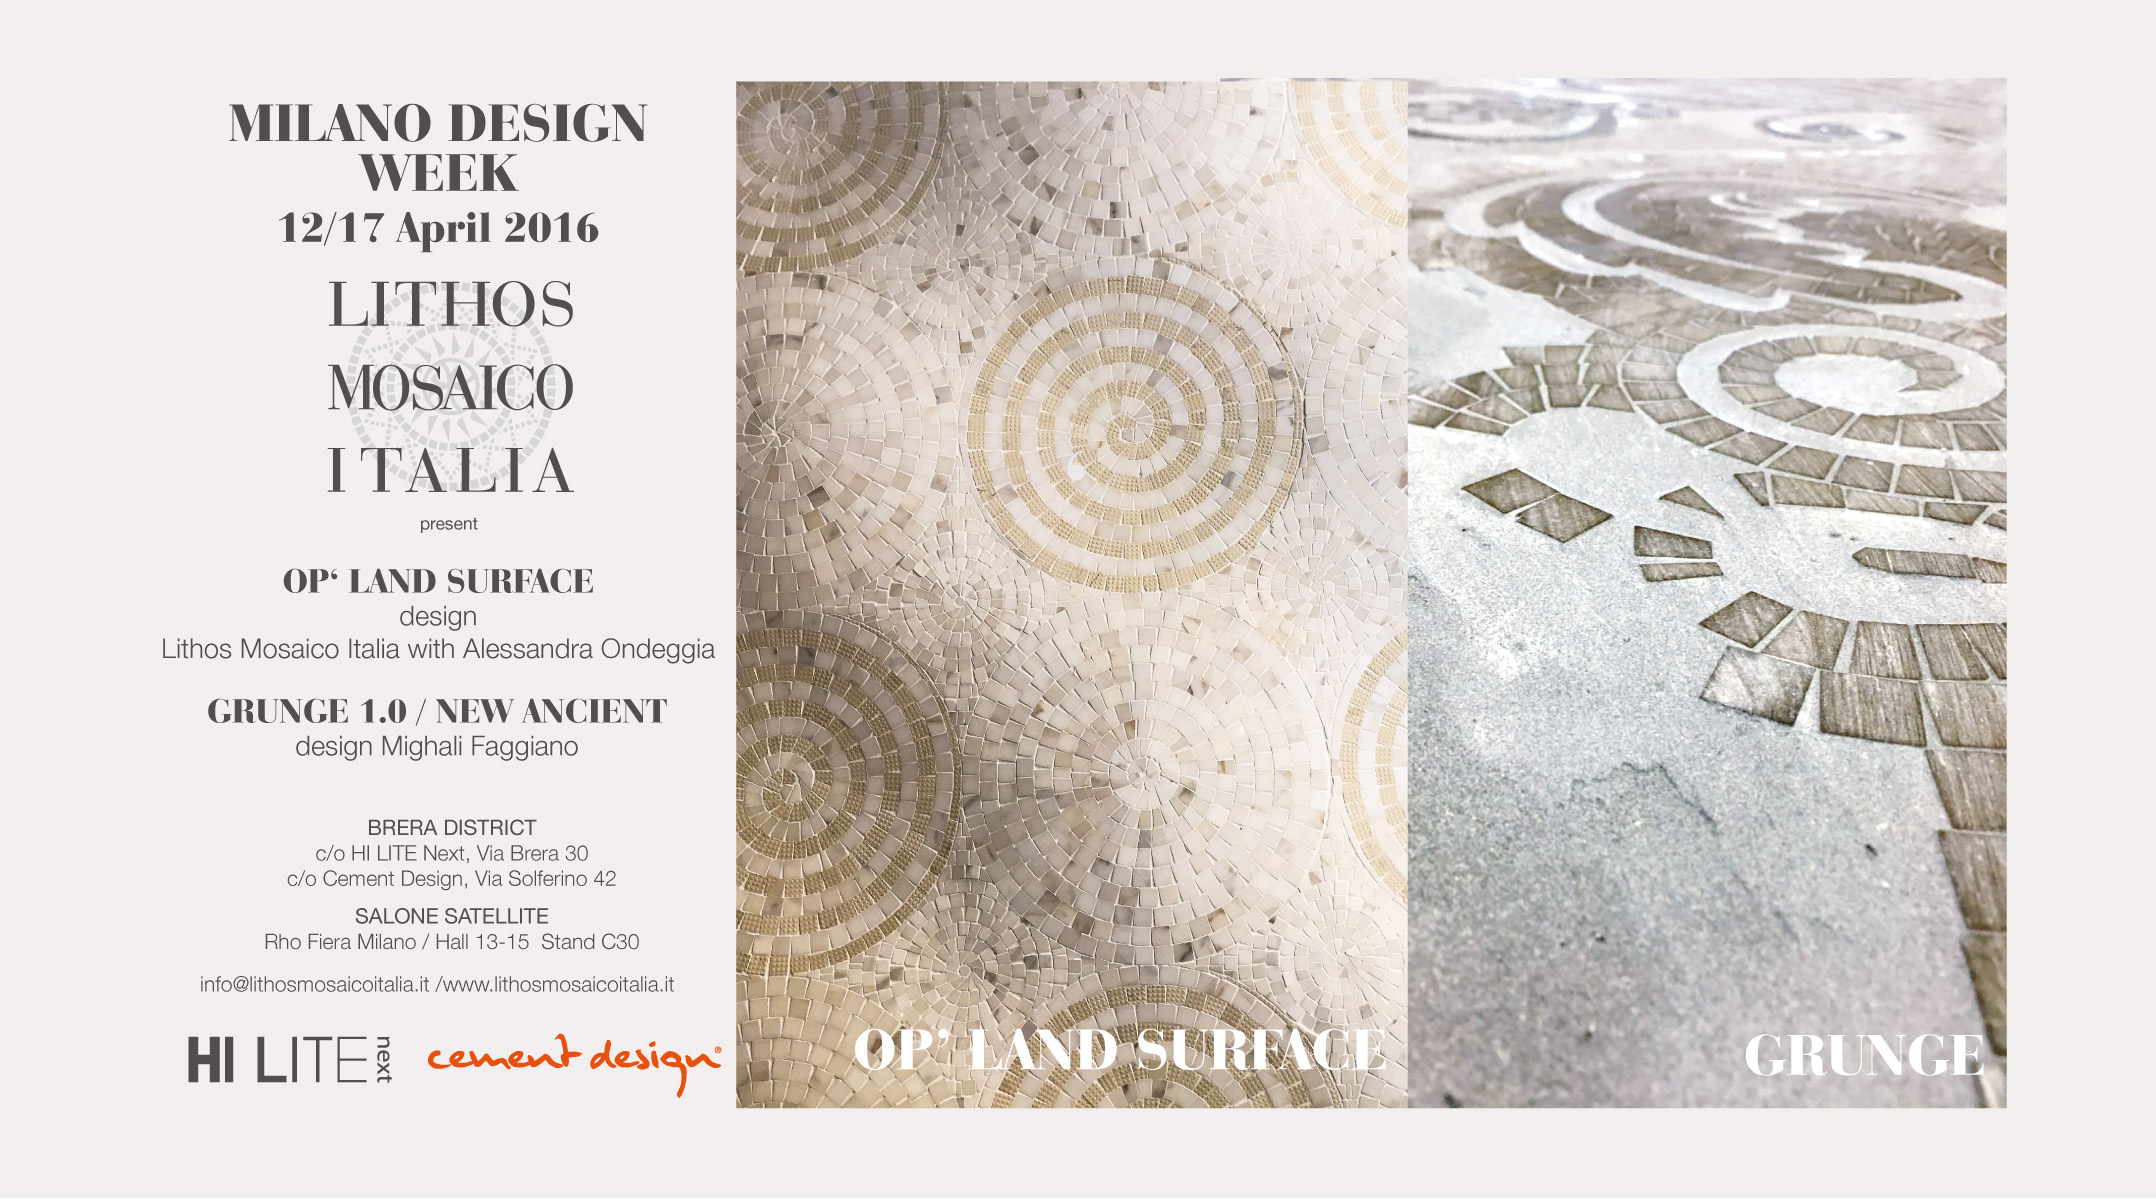 Lithos-Mosaico-Italia_Milano-Design-Week-2016- Milano Design Week 2016 Fiere